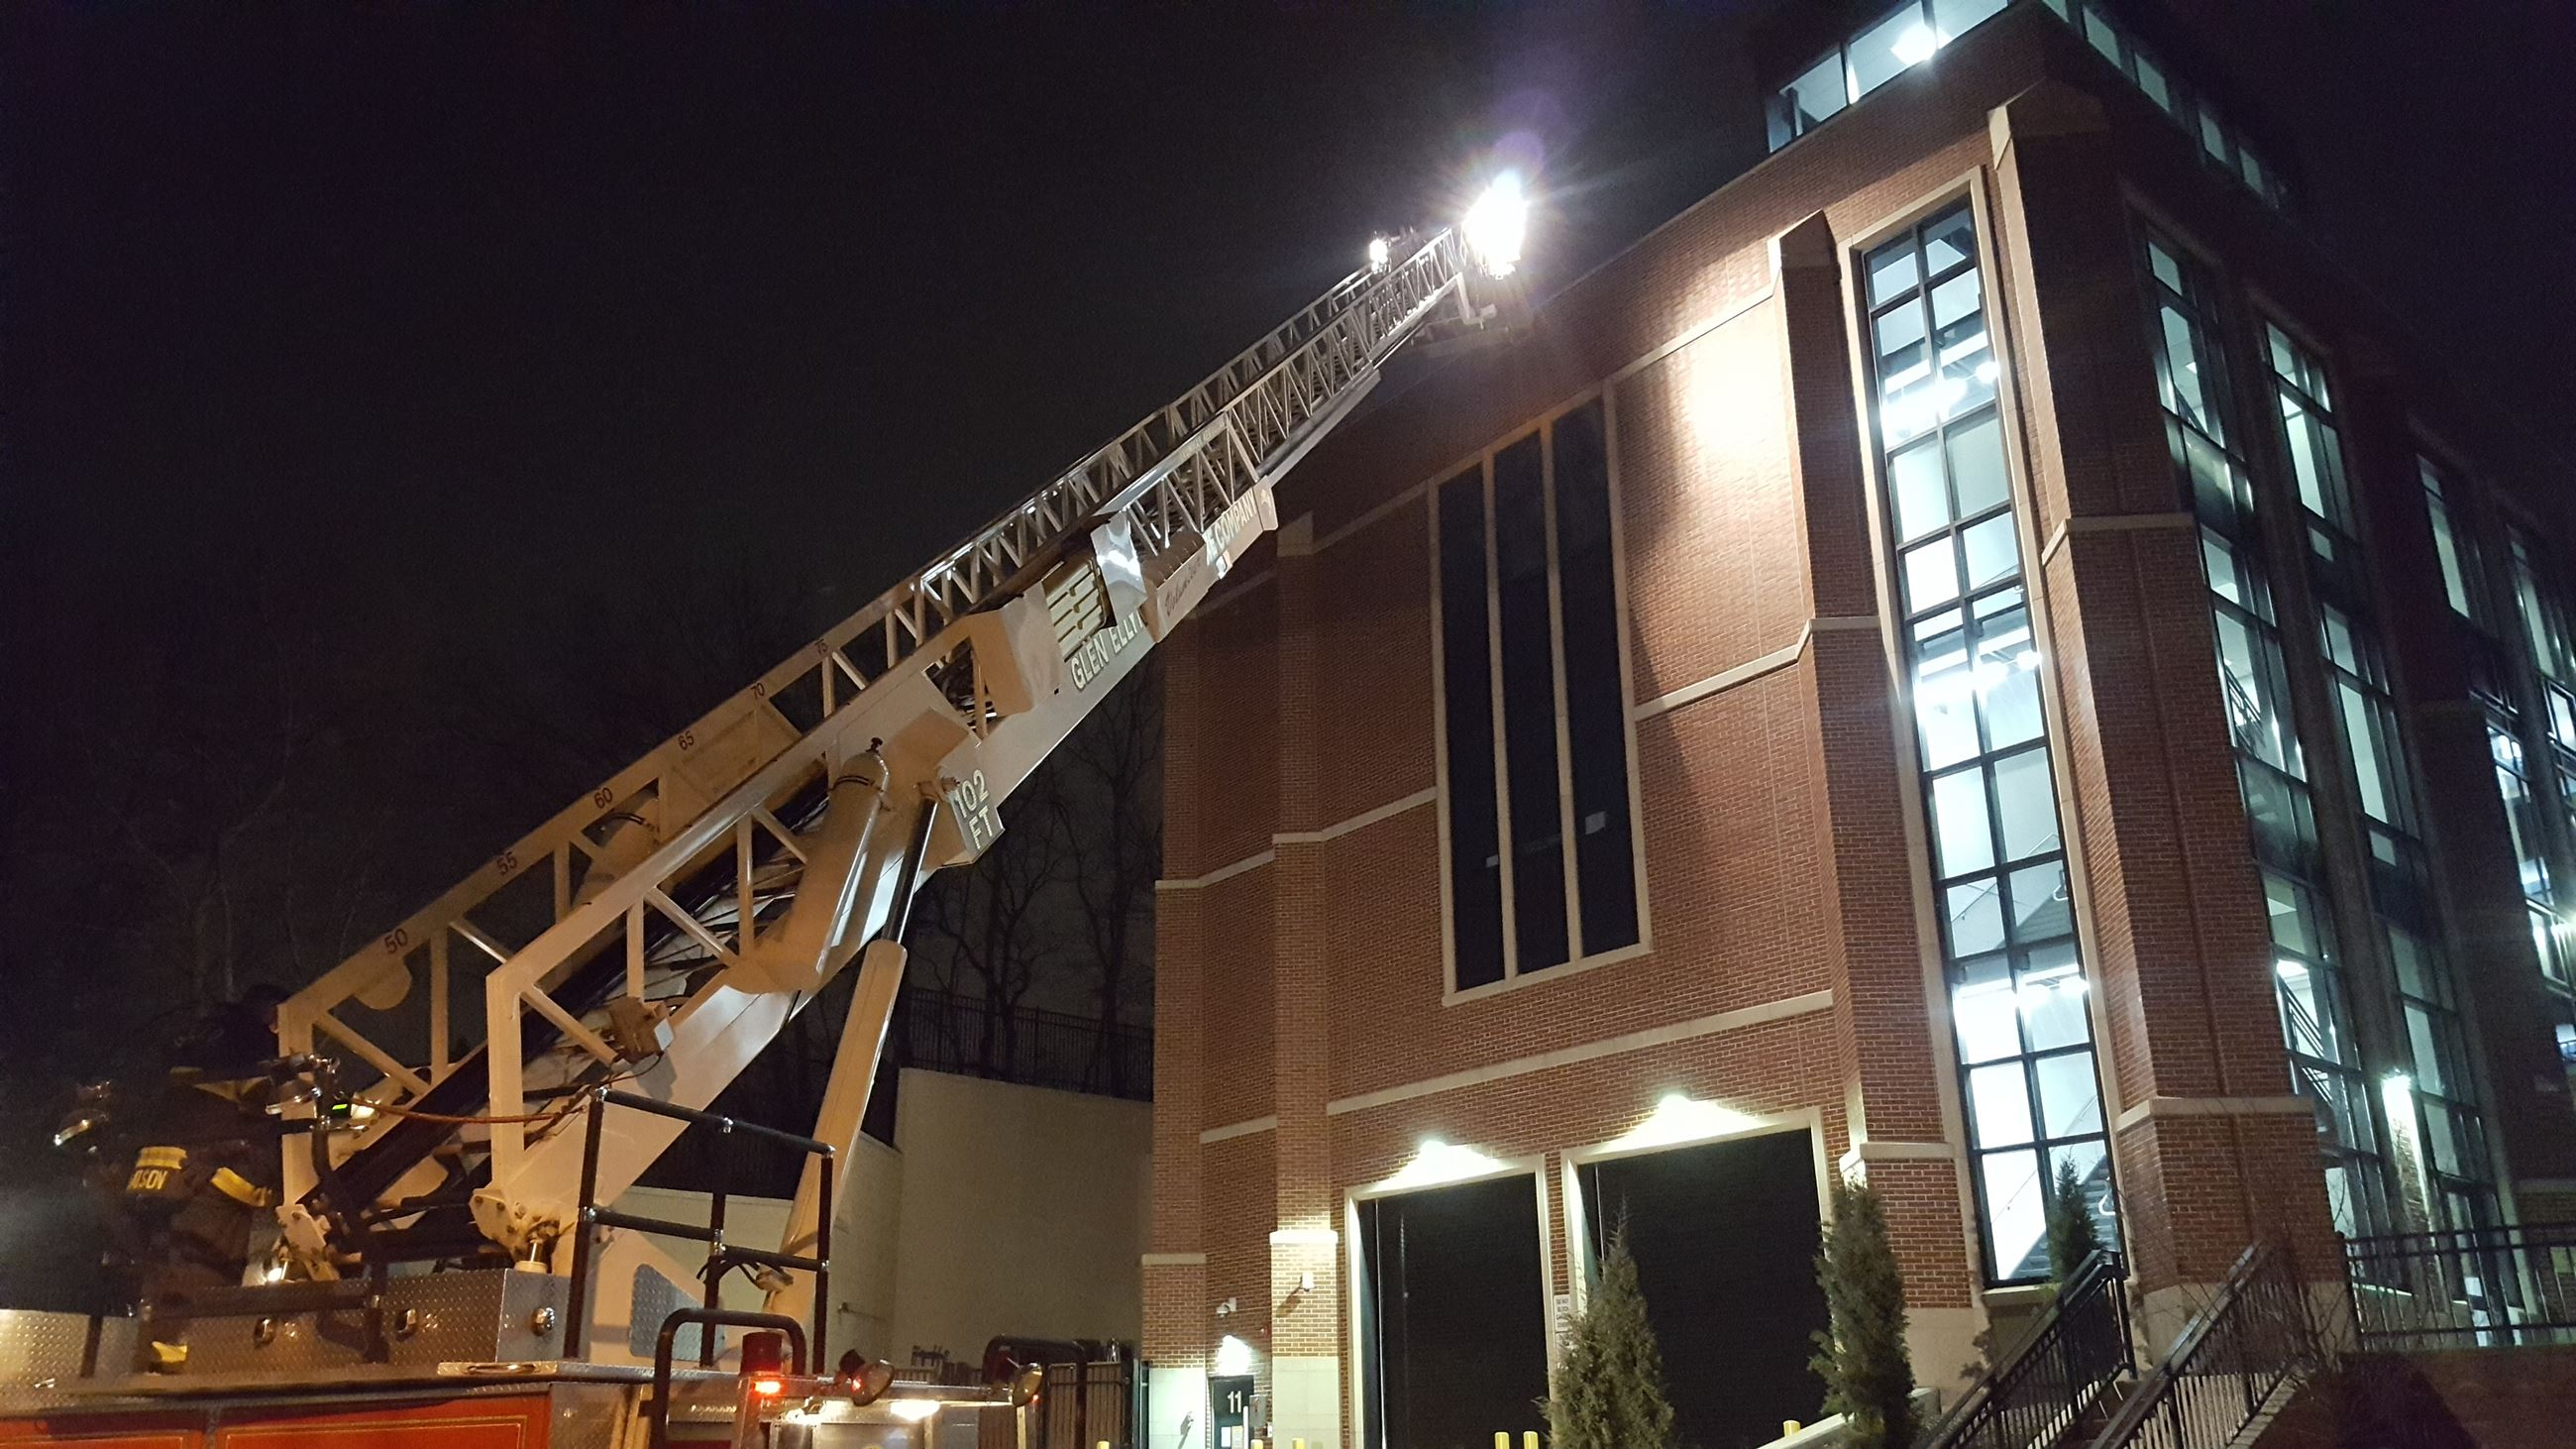 Ladder of fire truck up against training building